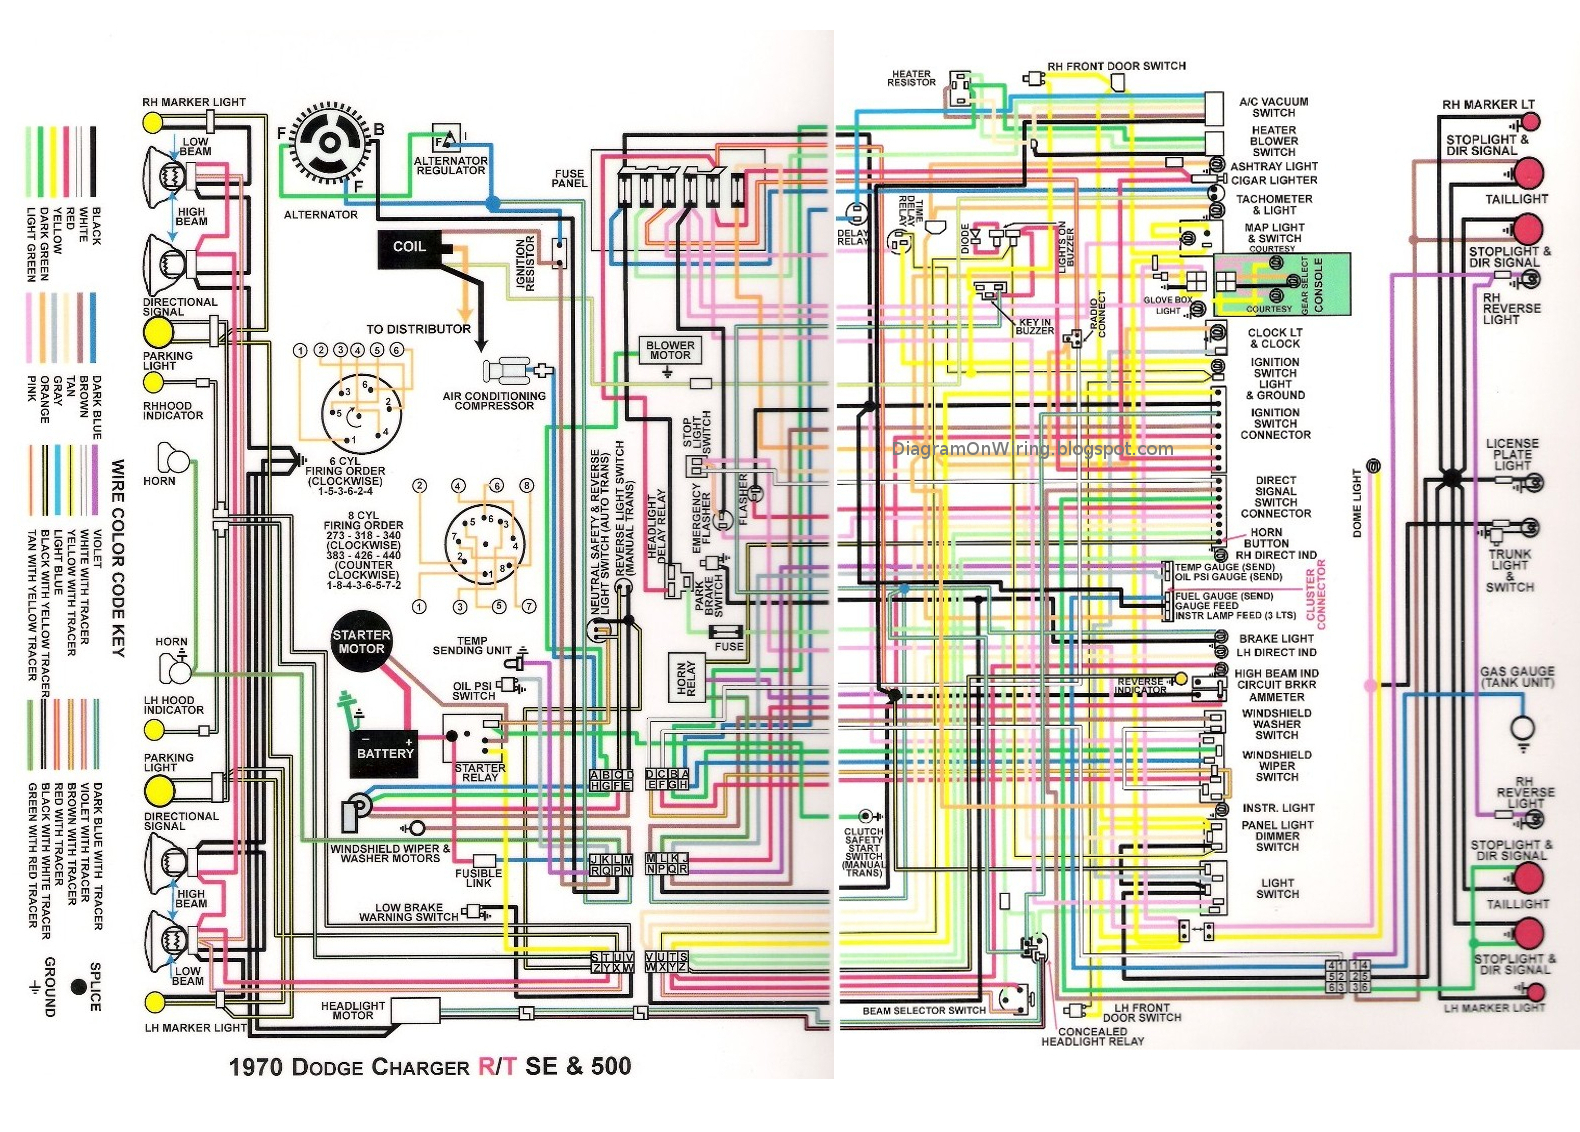 Complete+Wiring+Diagram+for+1970+Dodge+Charger+RT+SE+and+50 72 c10 wiring diagram 64 c10 wiring diagram \u2022 free wiring diagrams 2008 dodge charger wiring harness at gsmx.co